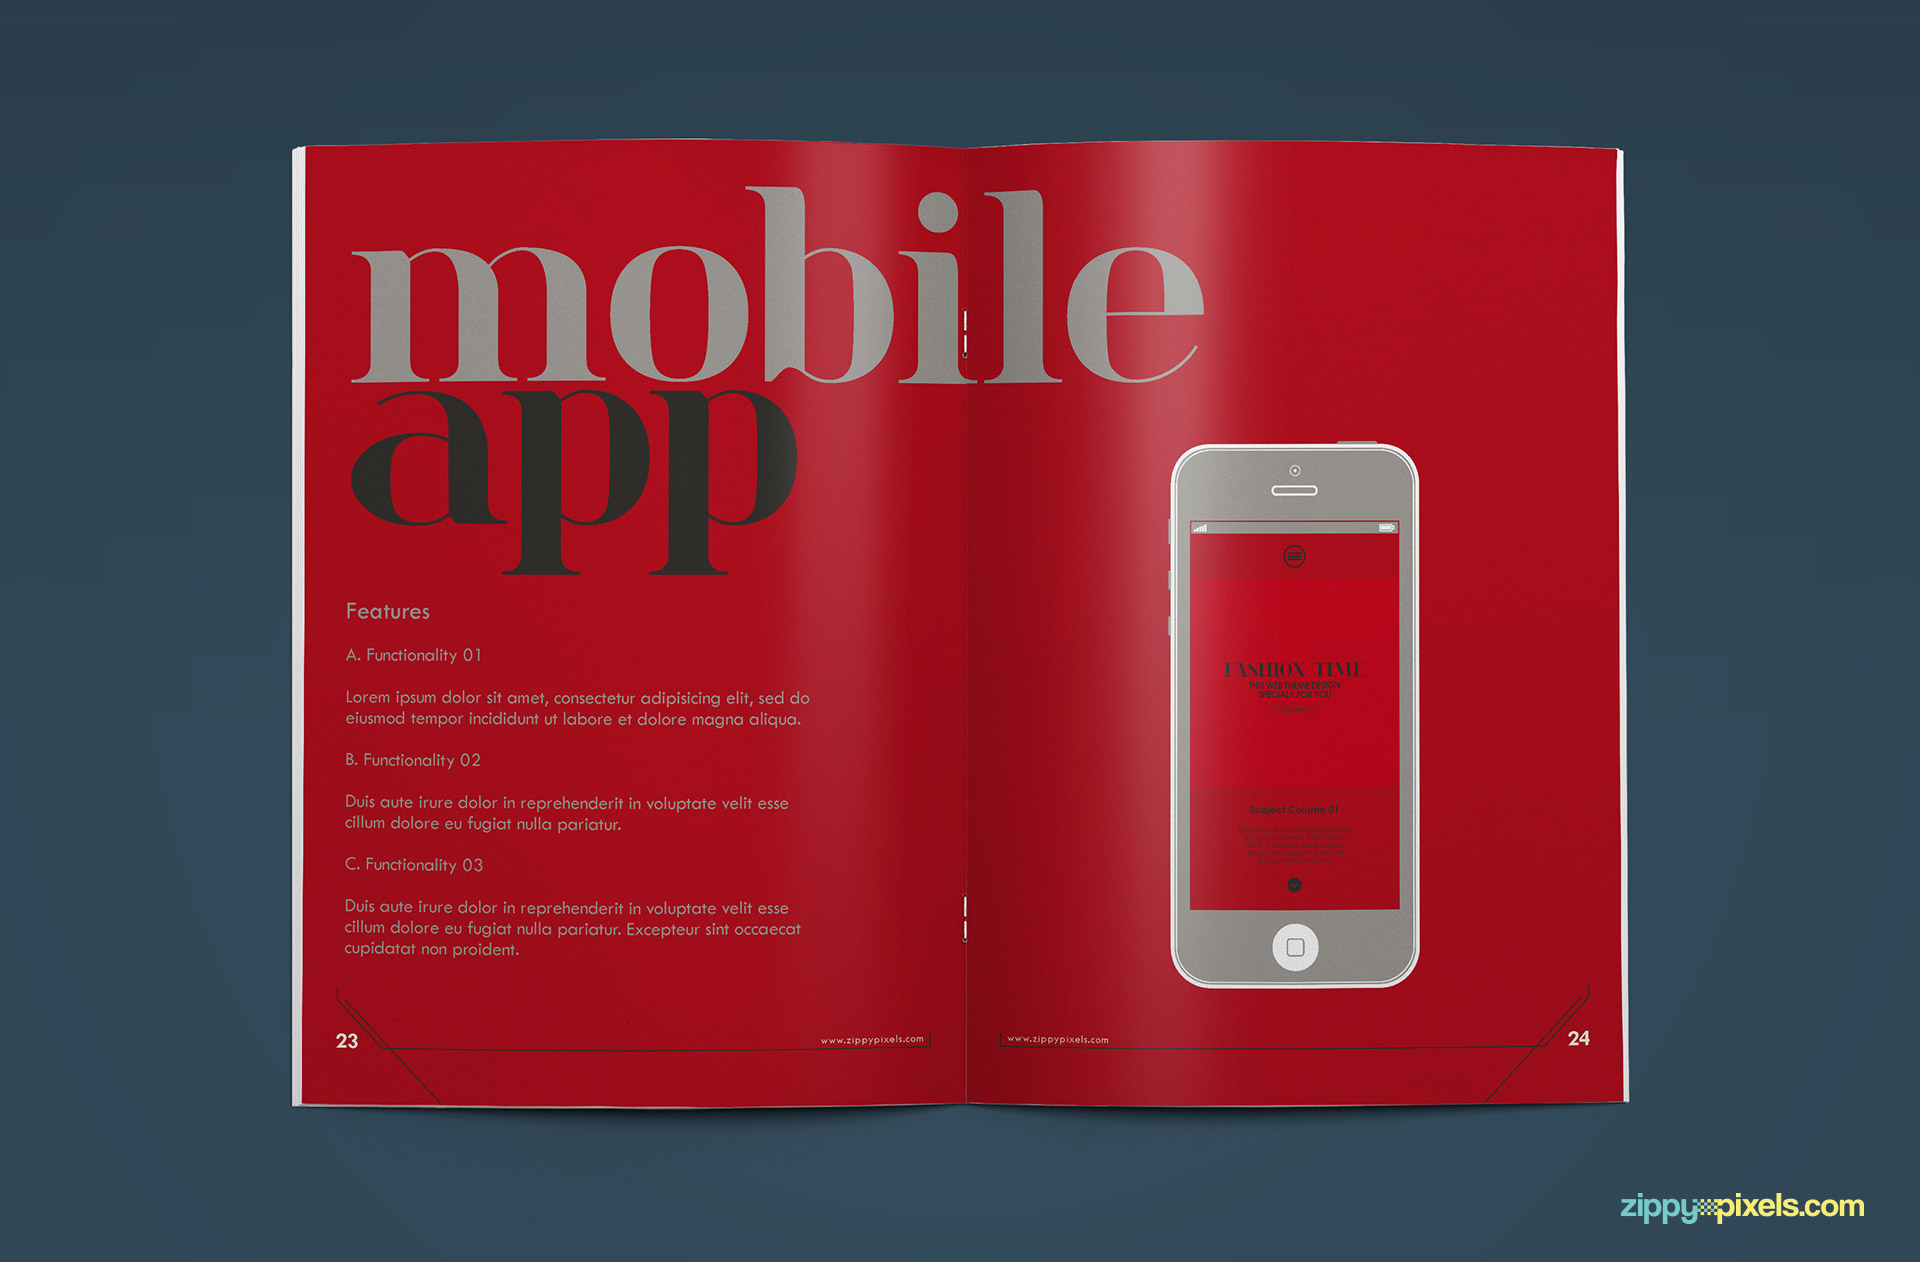 15-brand-book-10-mobile-app